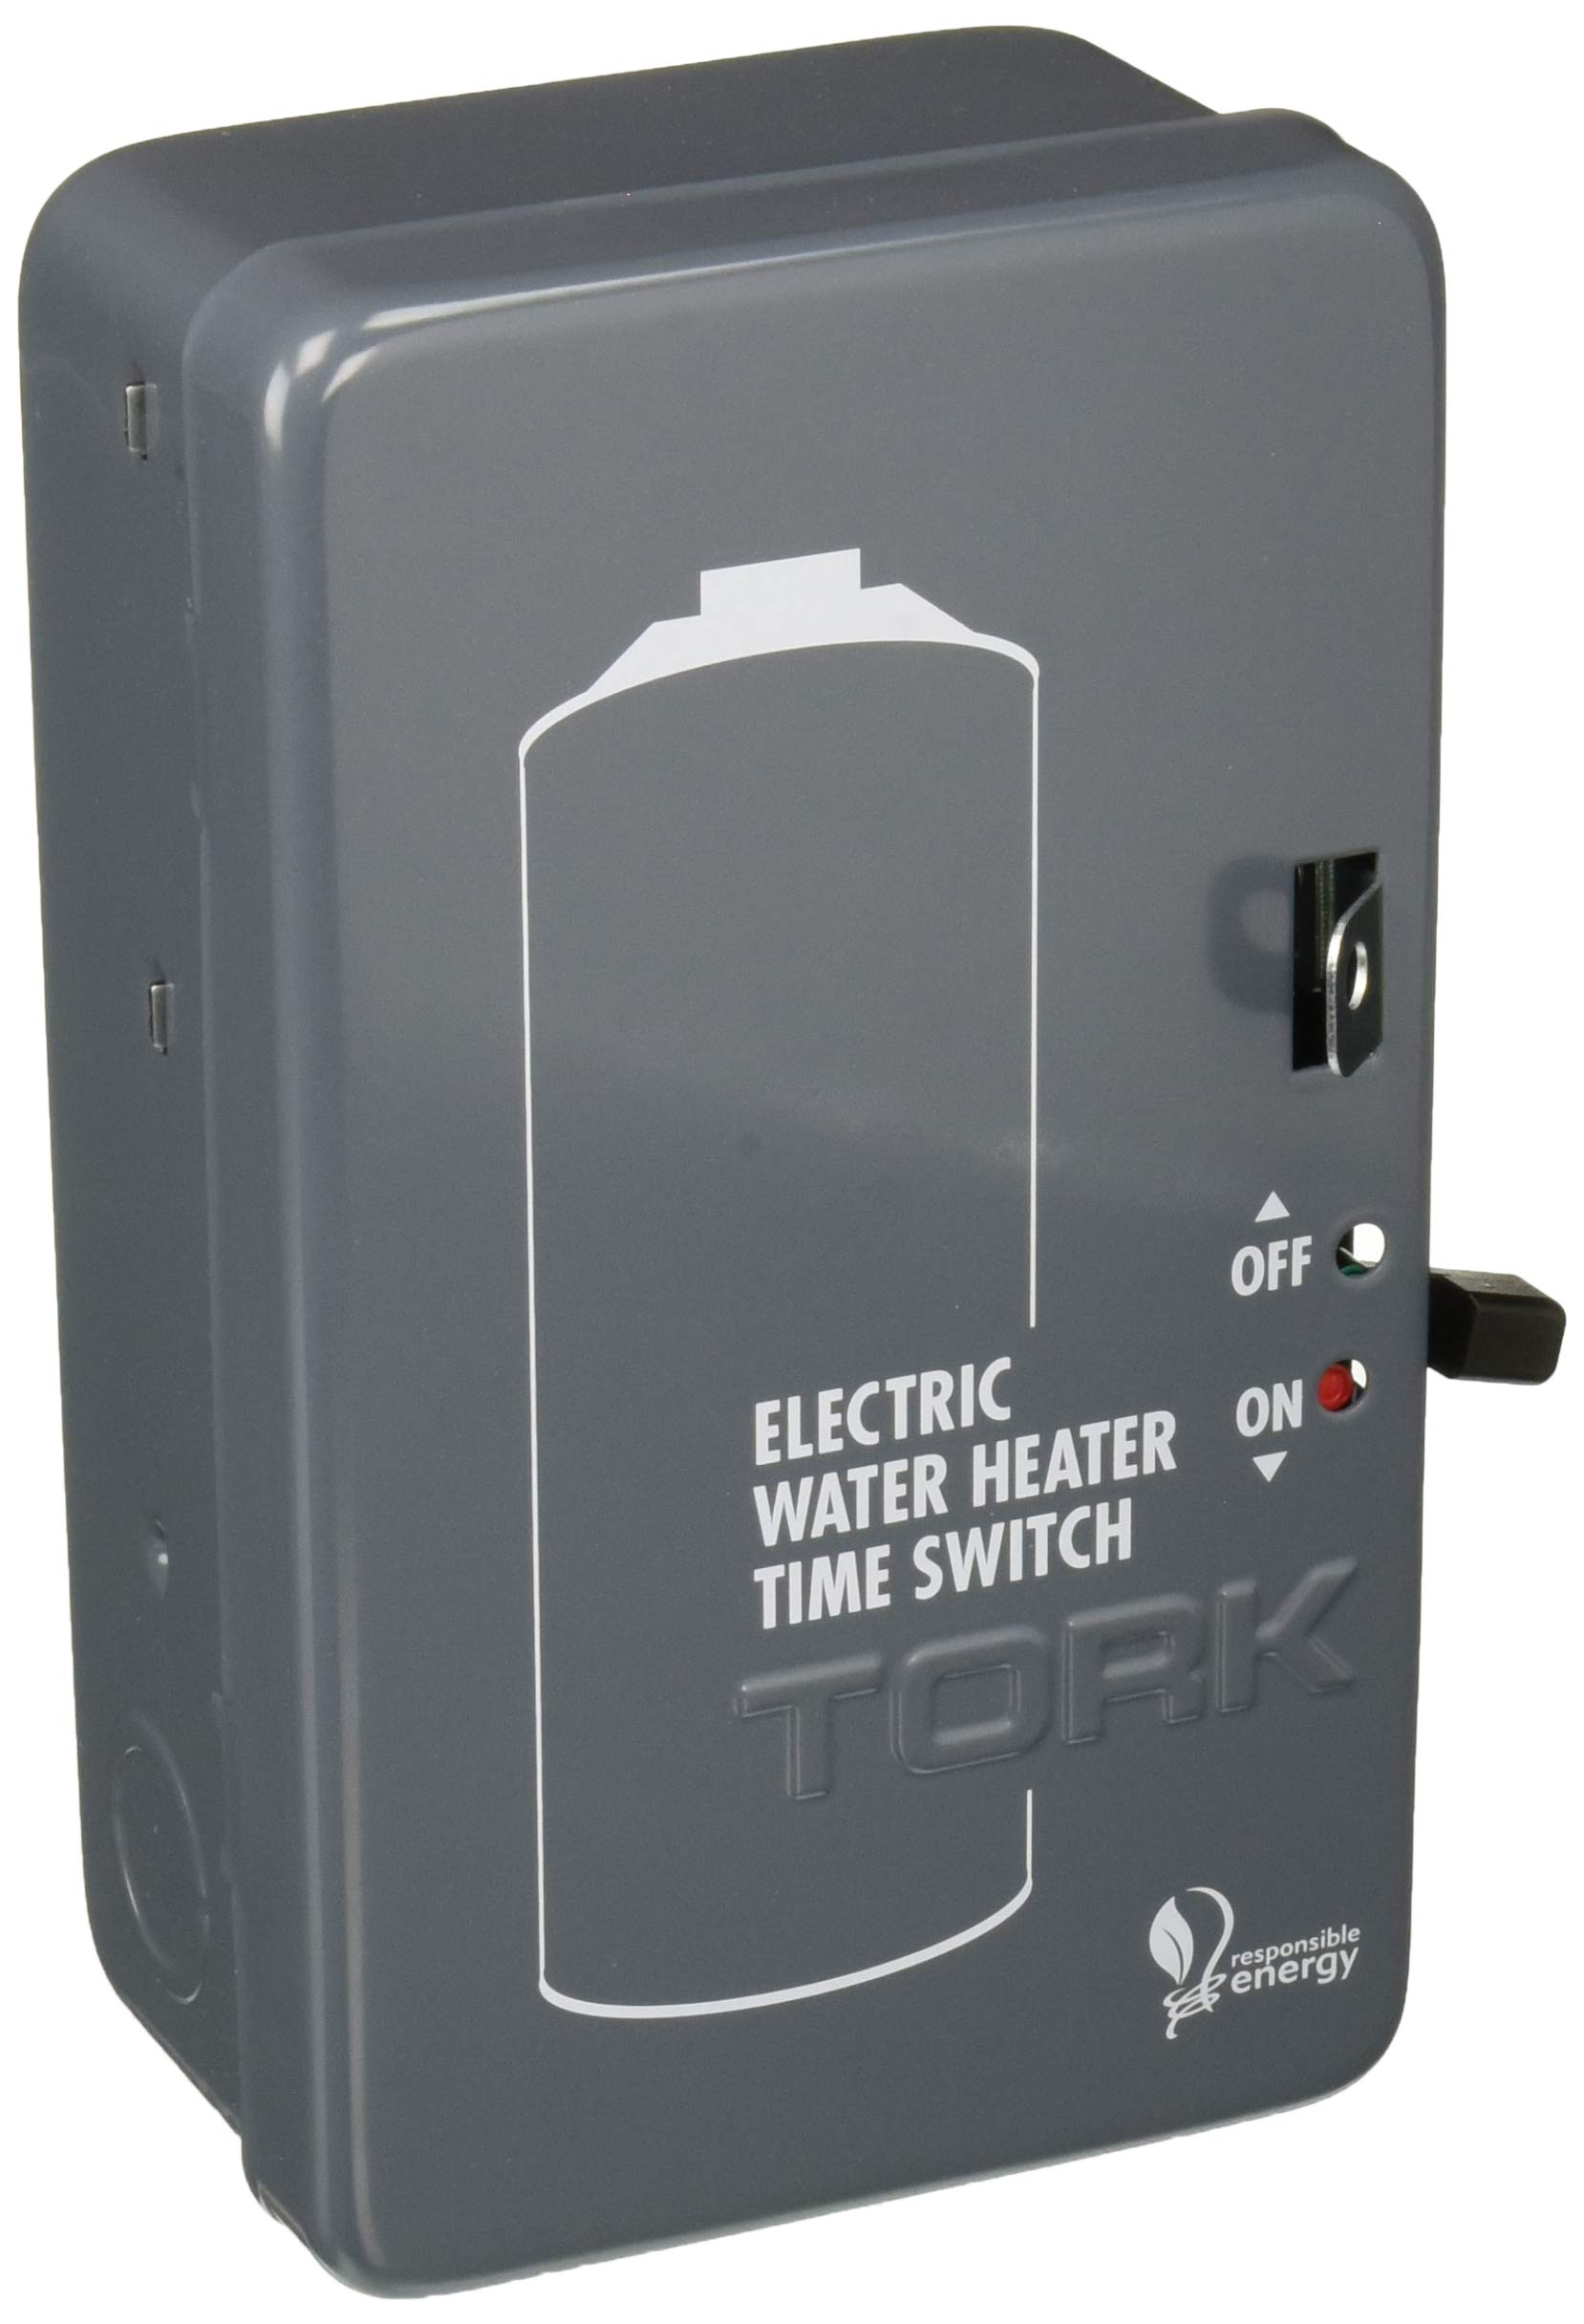 Tork NSI WH2B Mechanical Water Heater Time Switch, 24-Hour, 208/250V, 40A, DPST